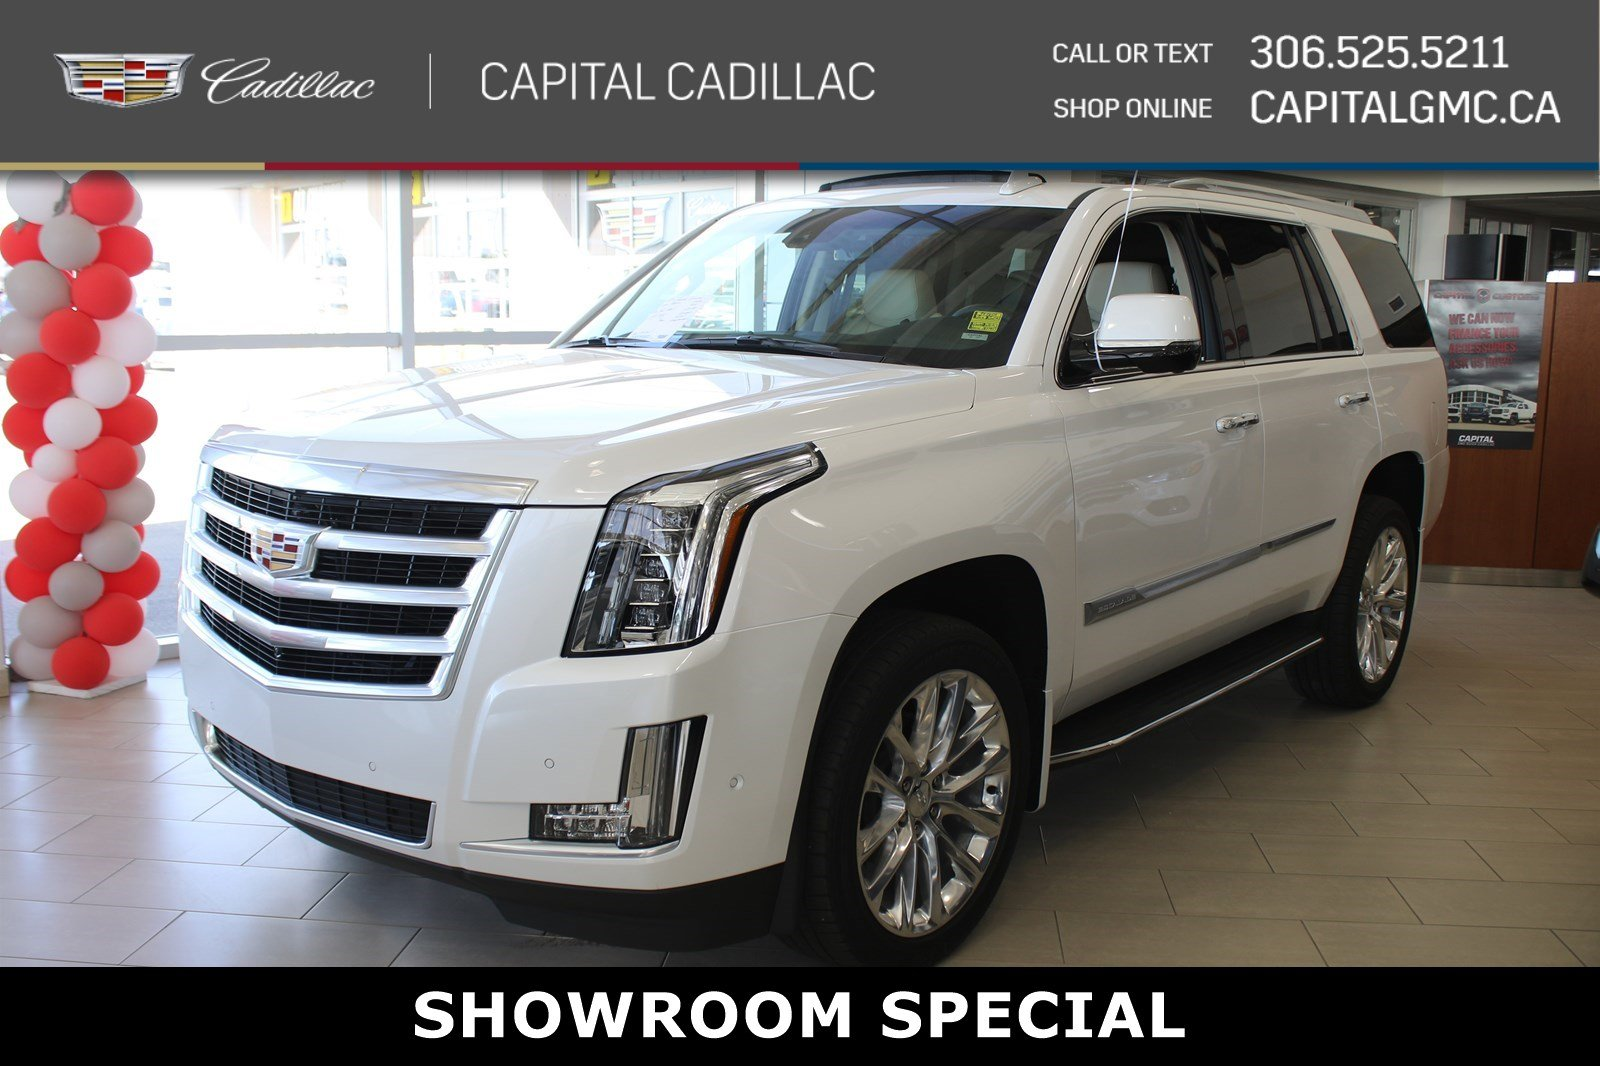 Certified Pre-Owned 2019 Cadillac Escalade Luxury 4WD*LEATHER*SUNROOF*NAV*